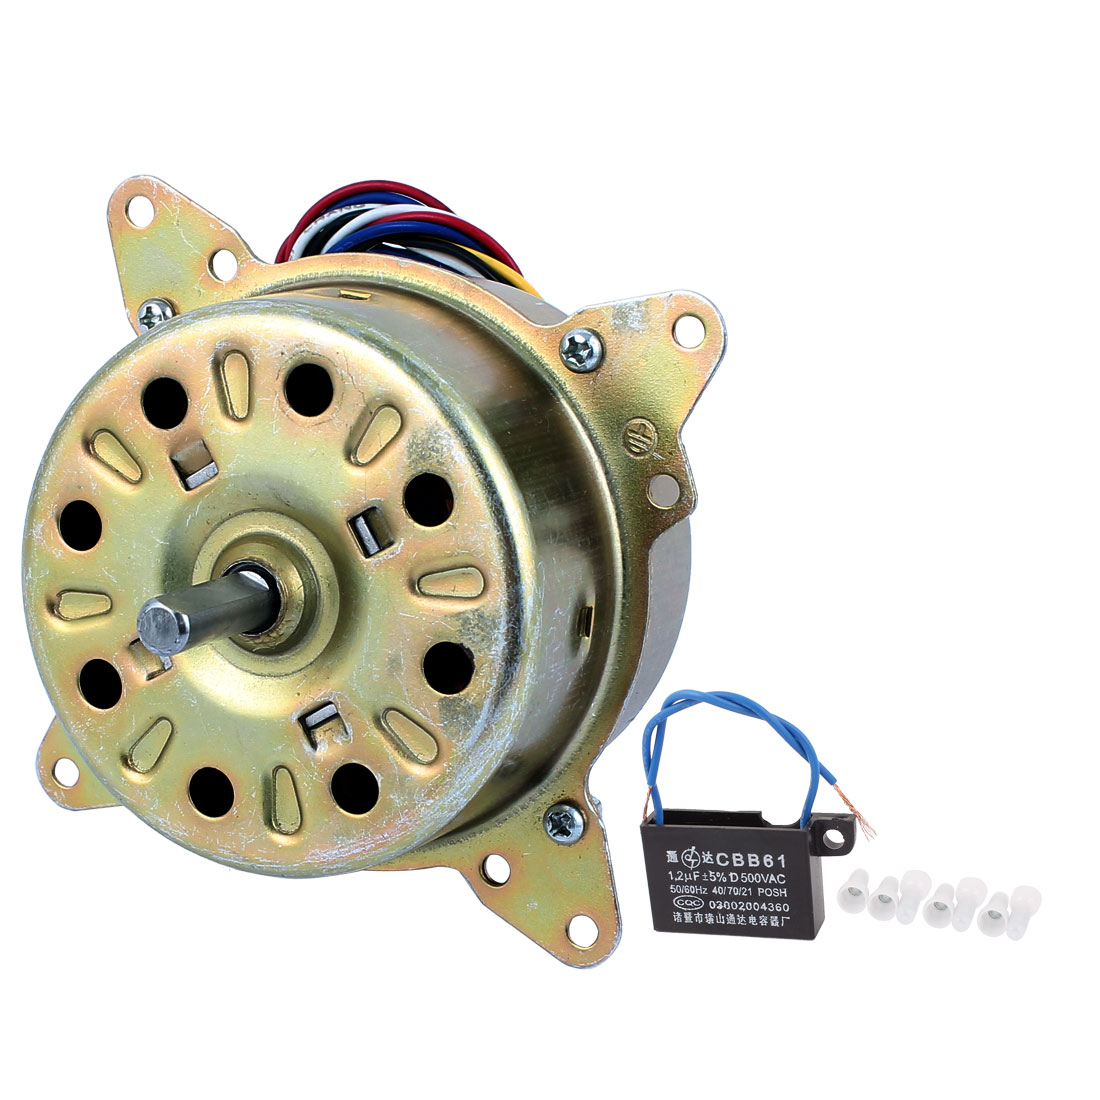 AC 220V 16W 1200RPM 8mmx25mm Shaft Dual Bearing Ball Electric Ventilator Fan Motor